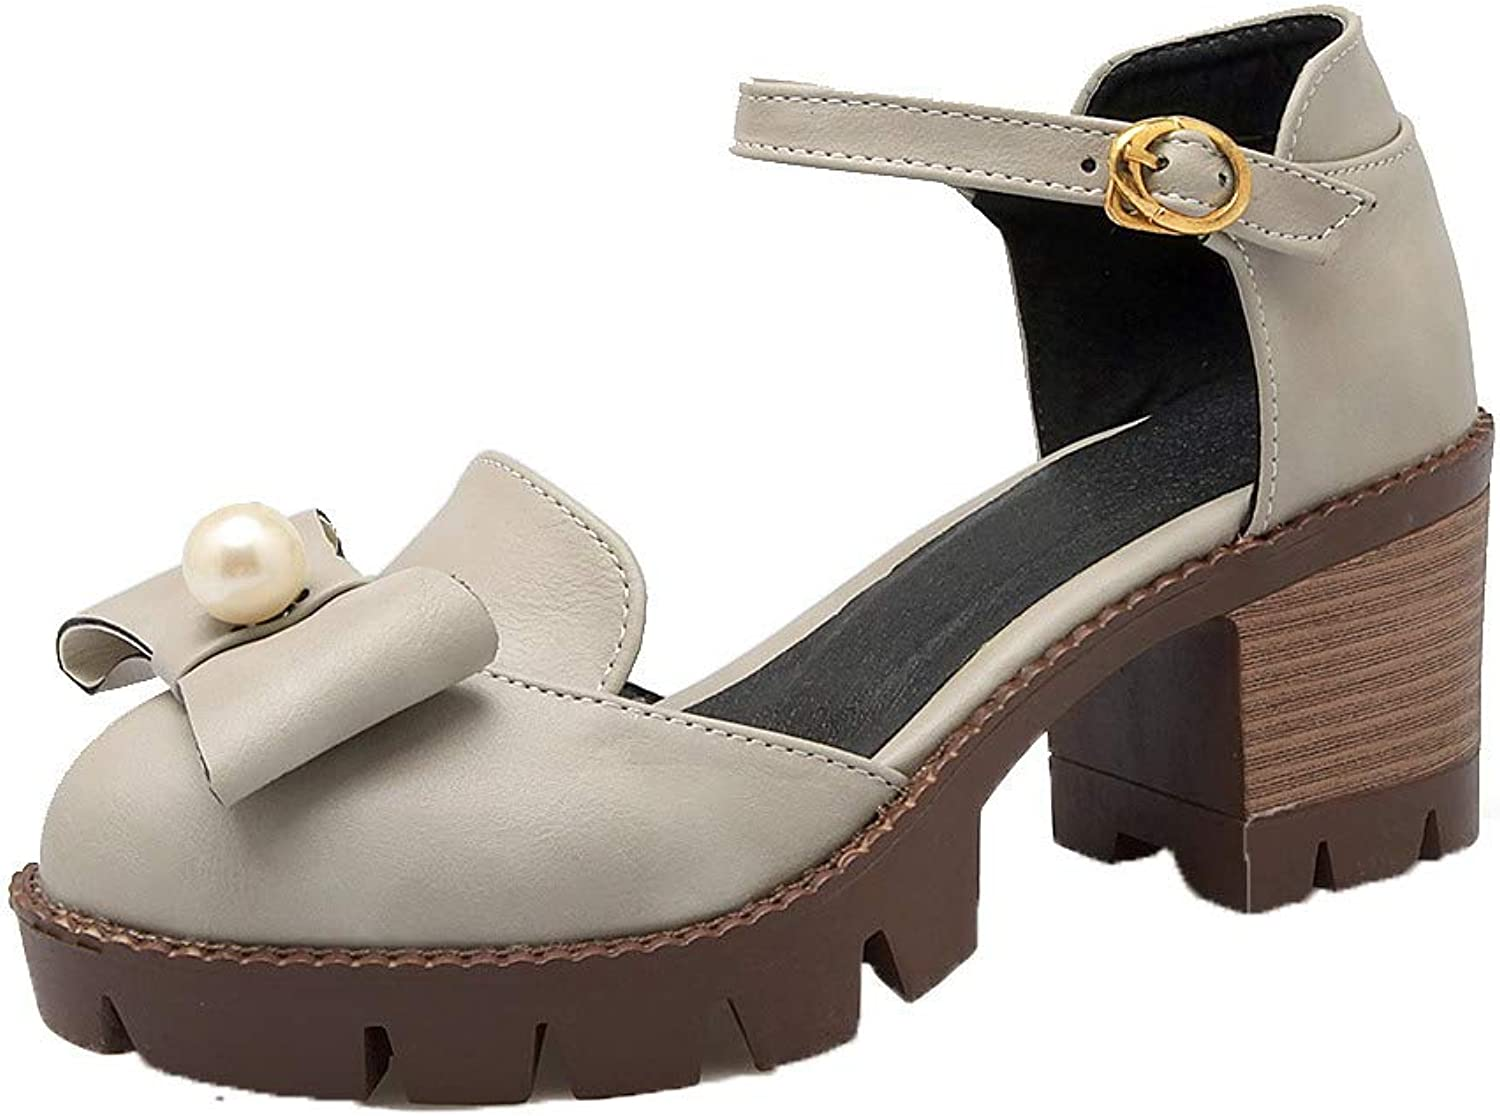 AmoonyFashion Women's Round-Toe Kitten-Heels PU Solid Buckle Sandals, BUSLS005498